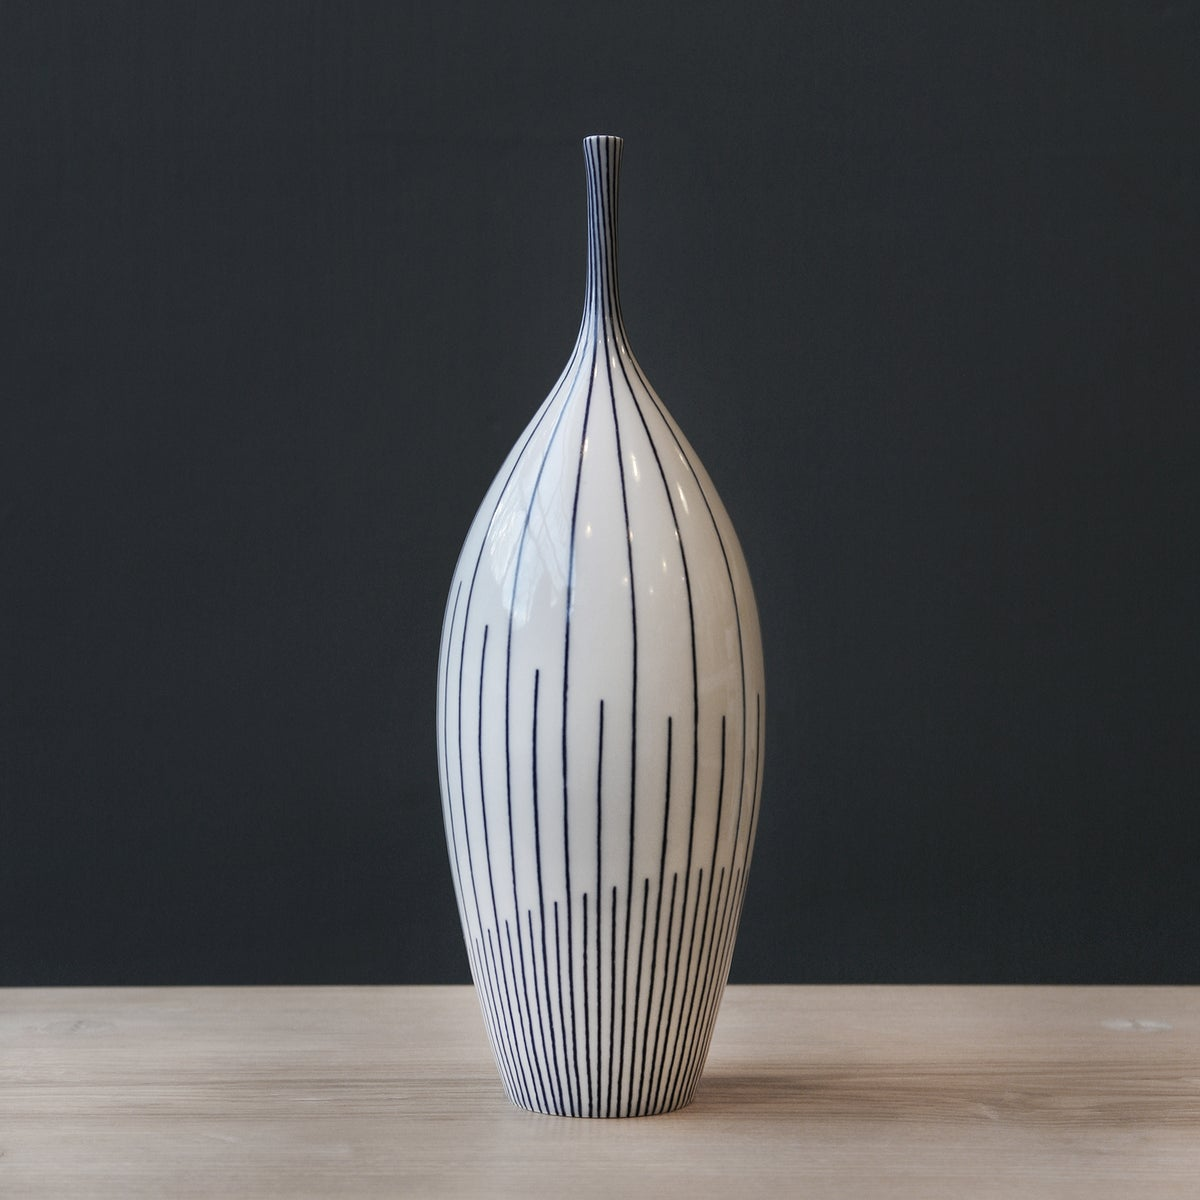 Image of Extra Large Twisted Lines Bottle by Rhian Malin